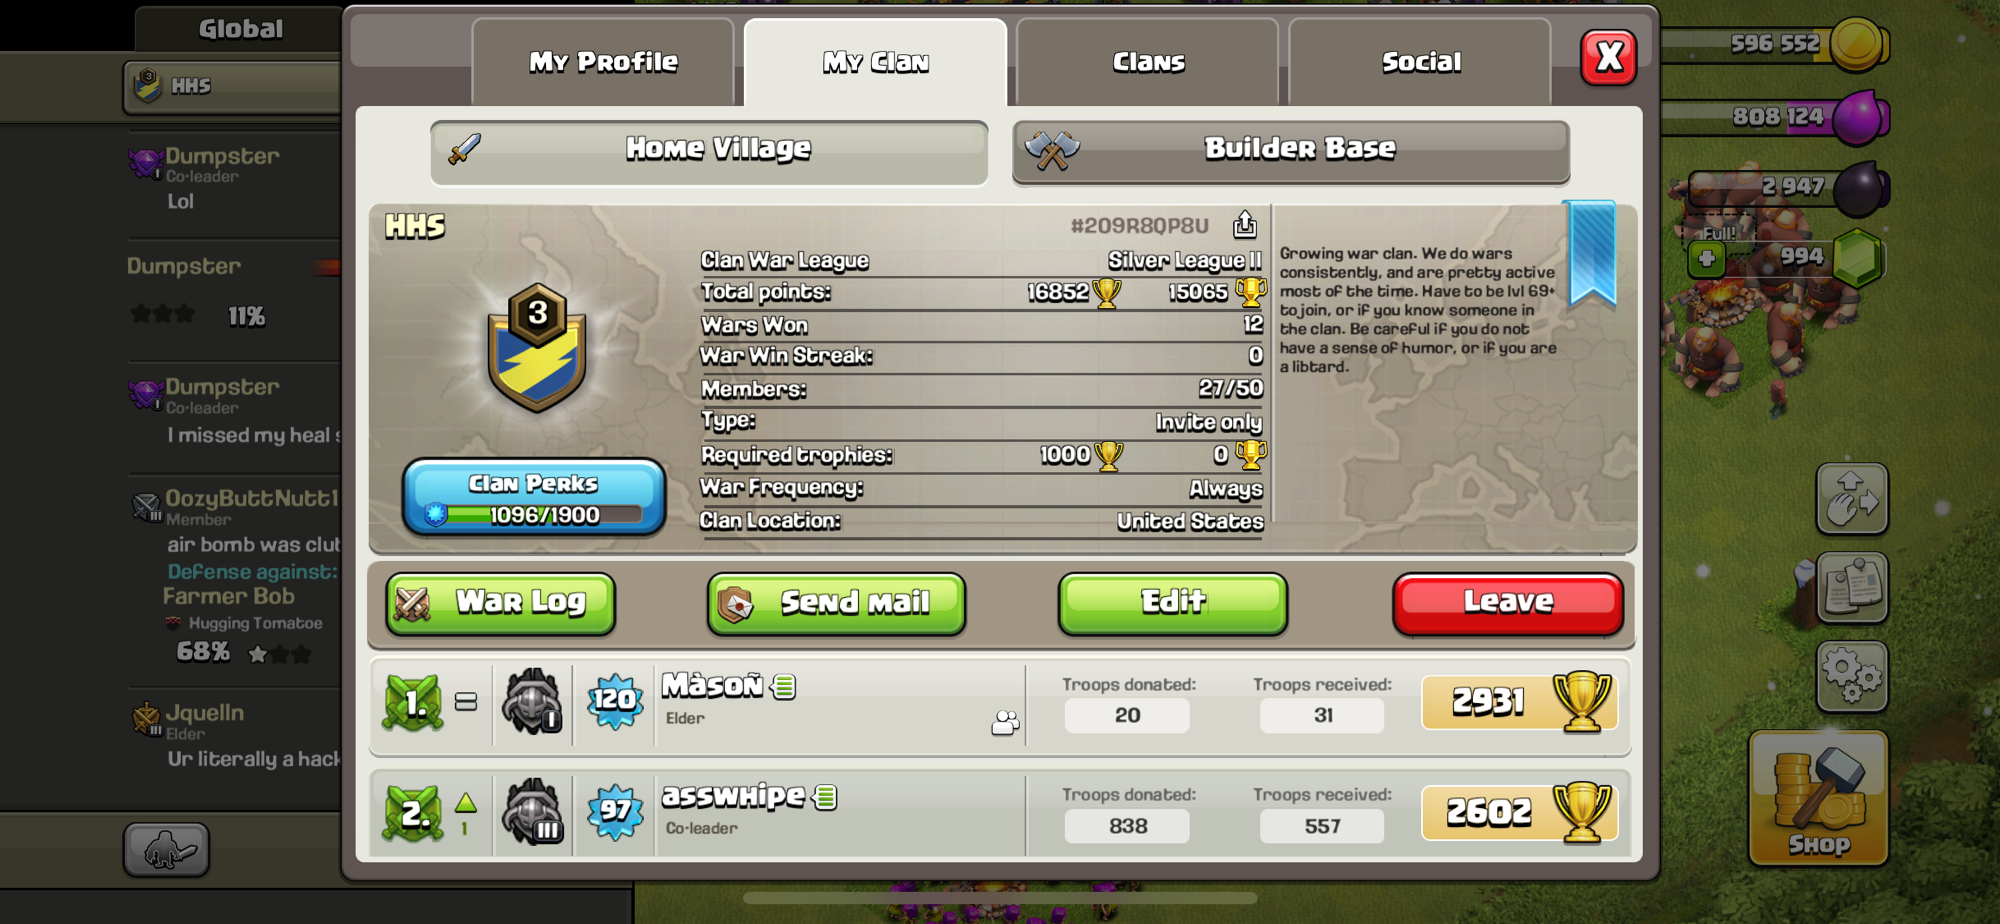 Please join need active members for war and clan games